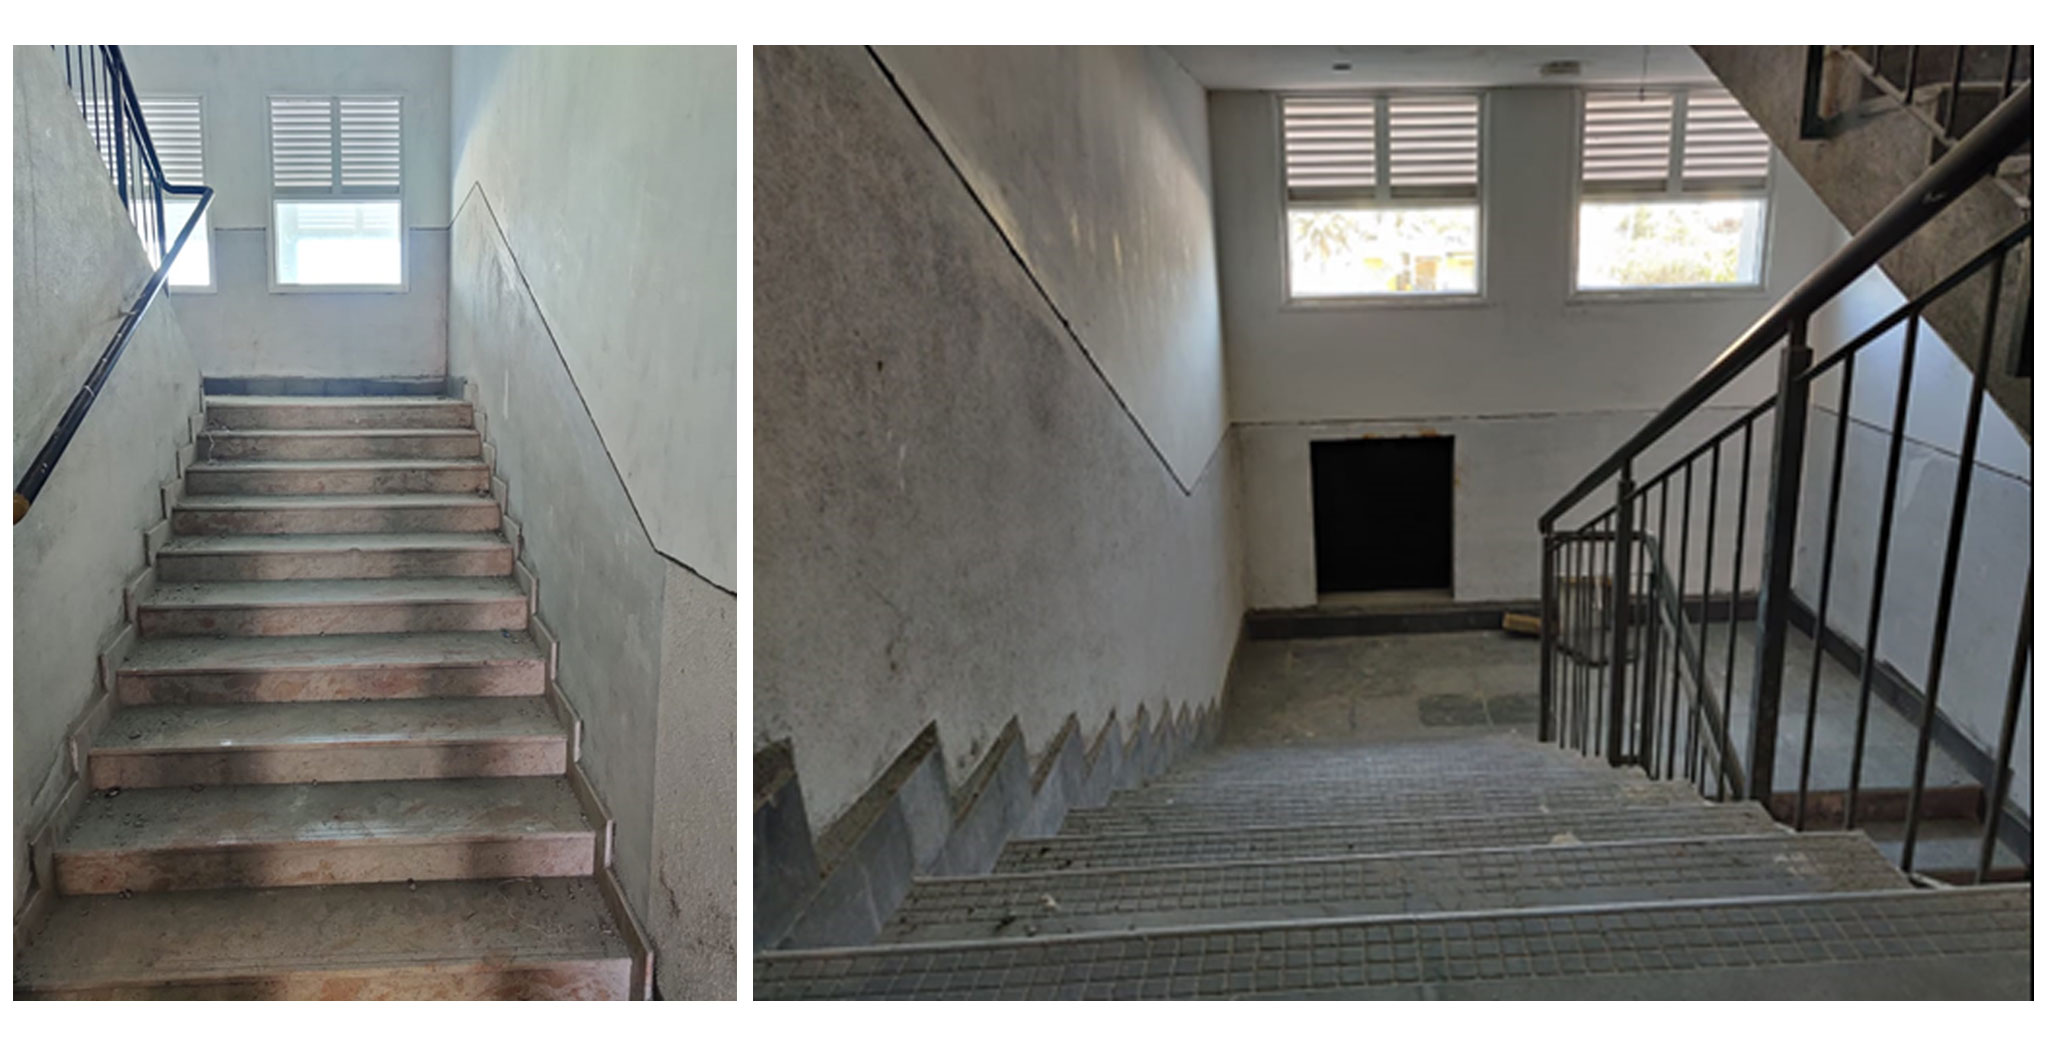 Jul 2021 - Staircase area: Painting work in progress